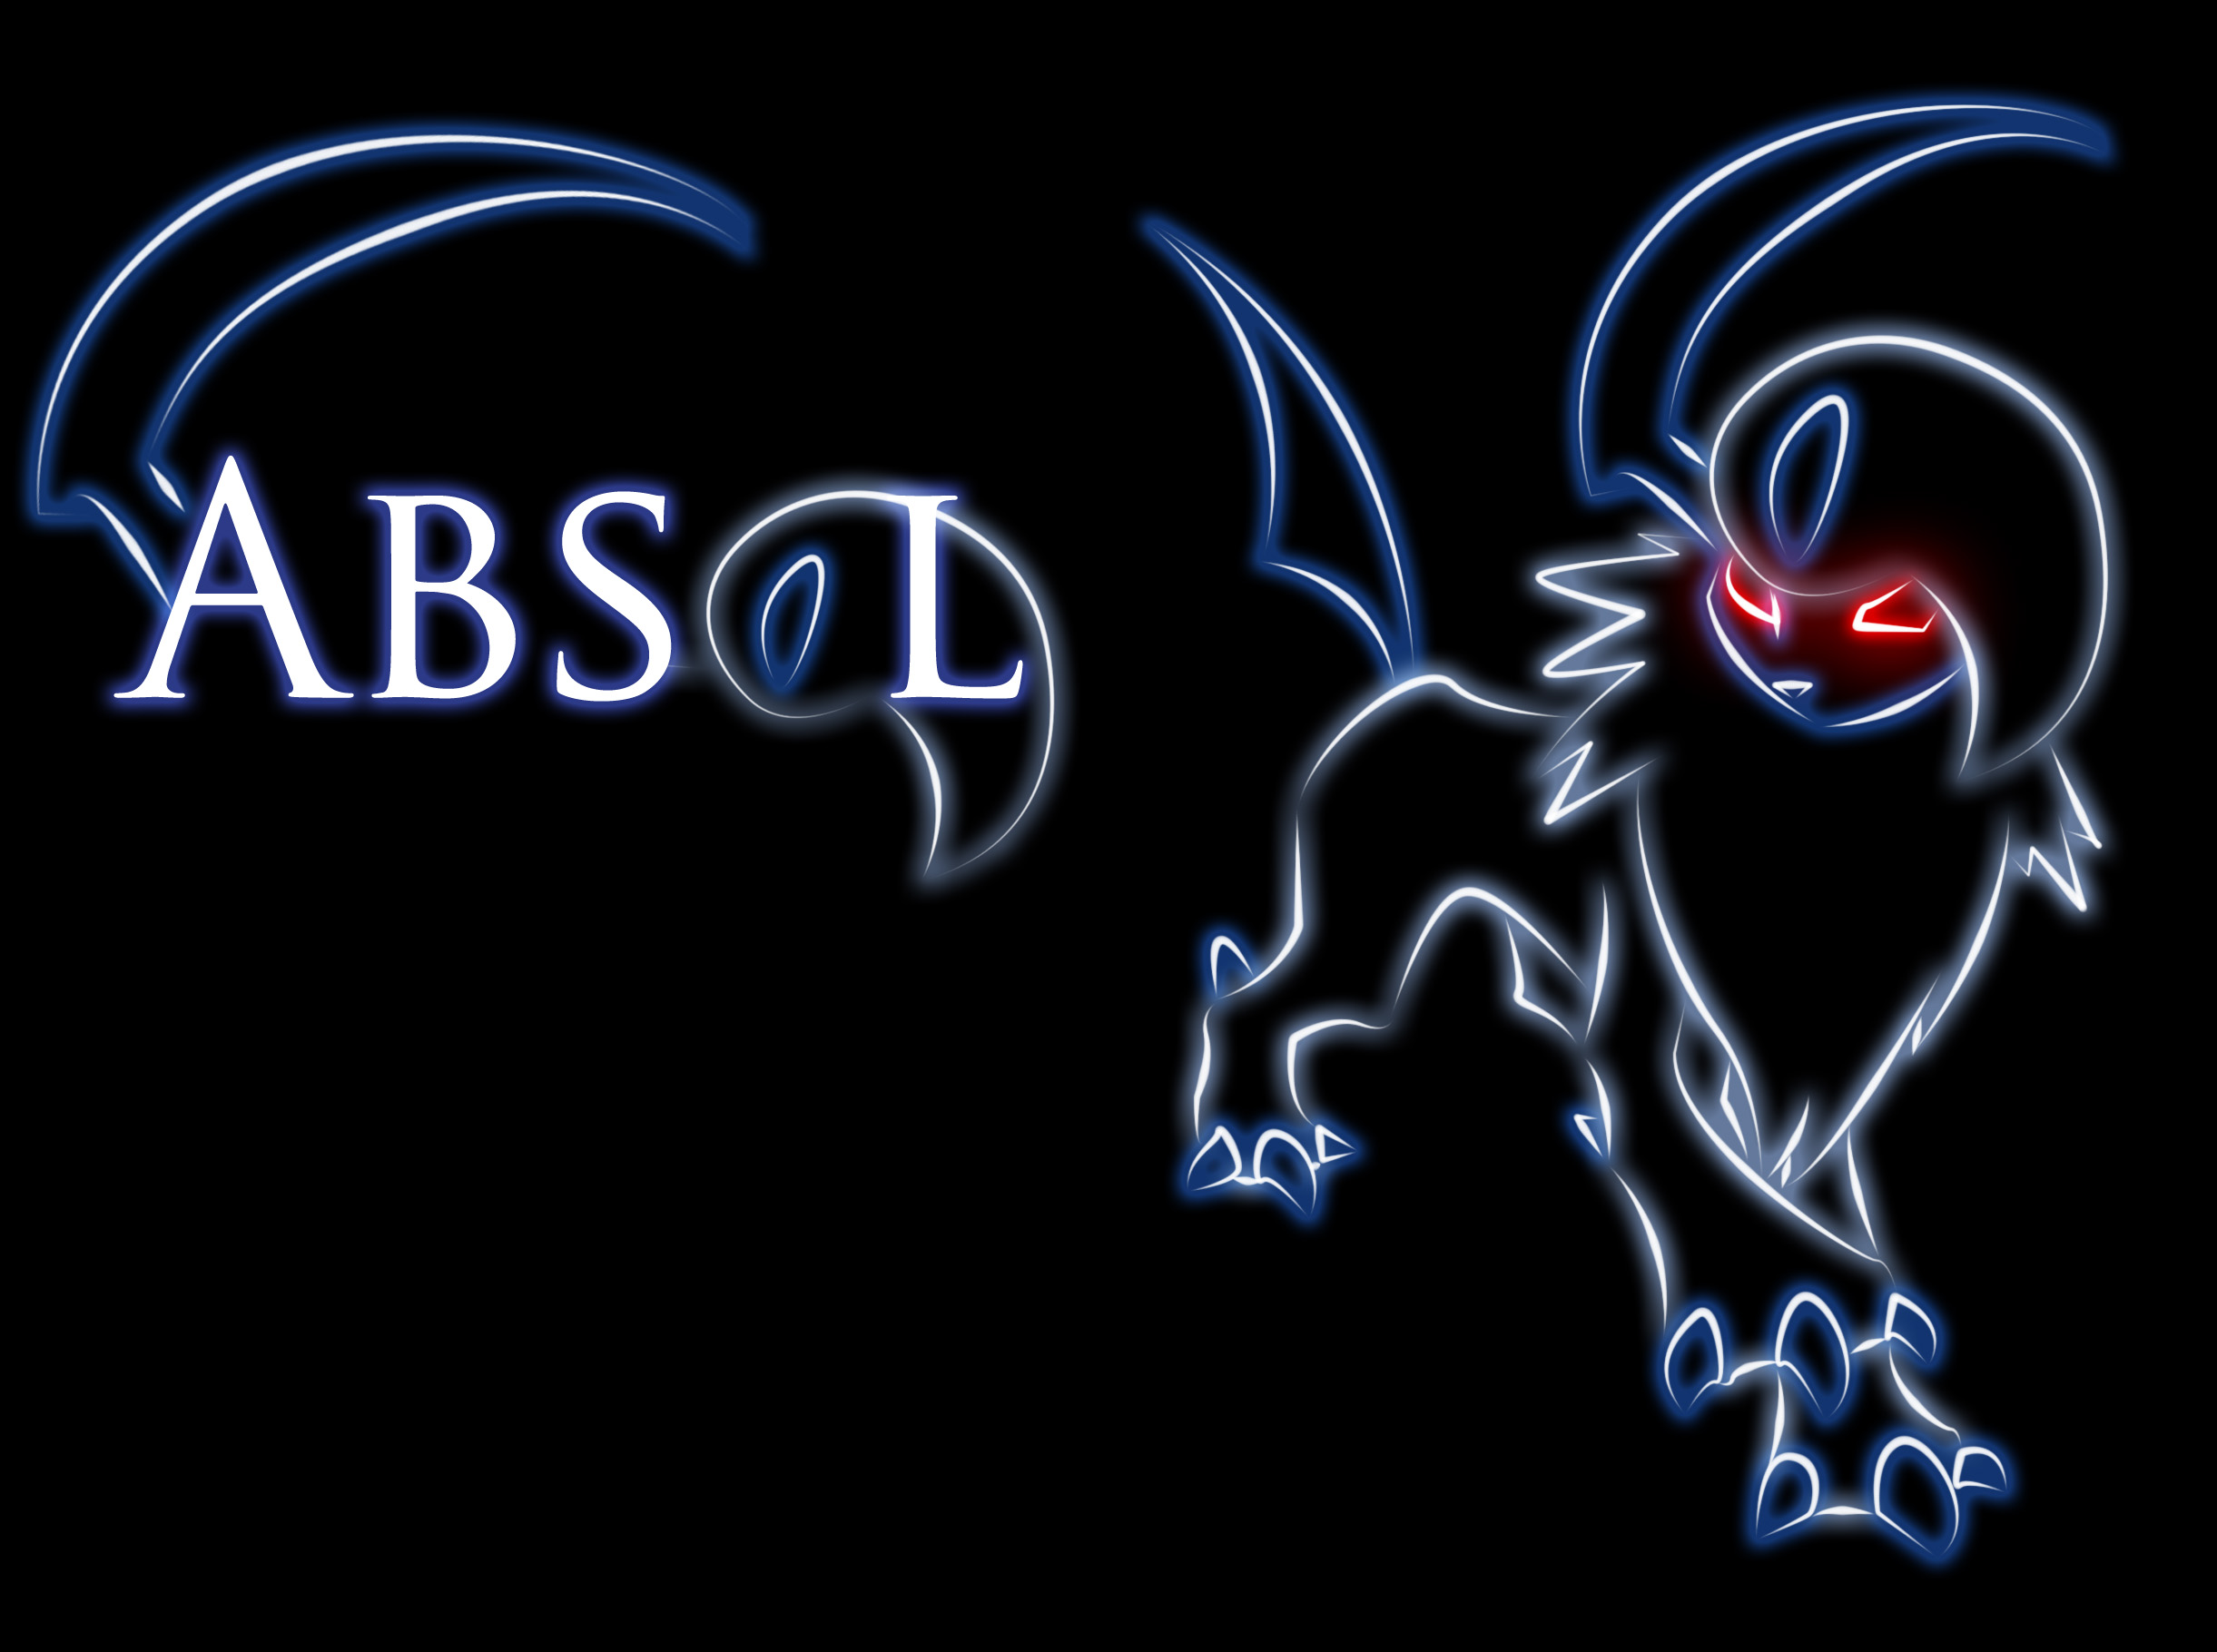 Absol Wallpaper | Full HD Pictures